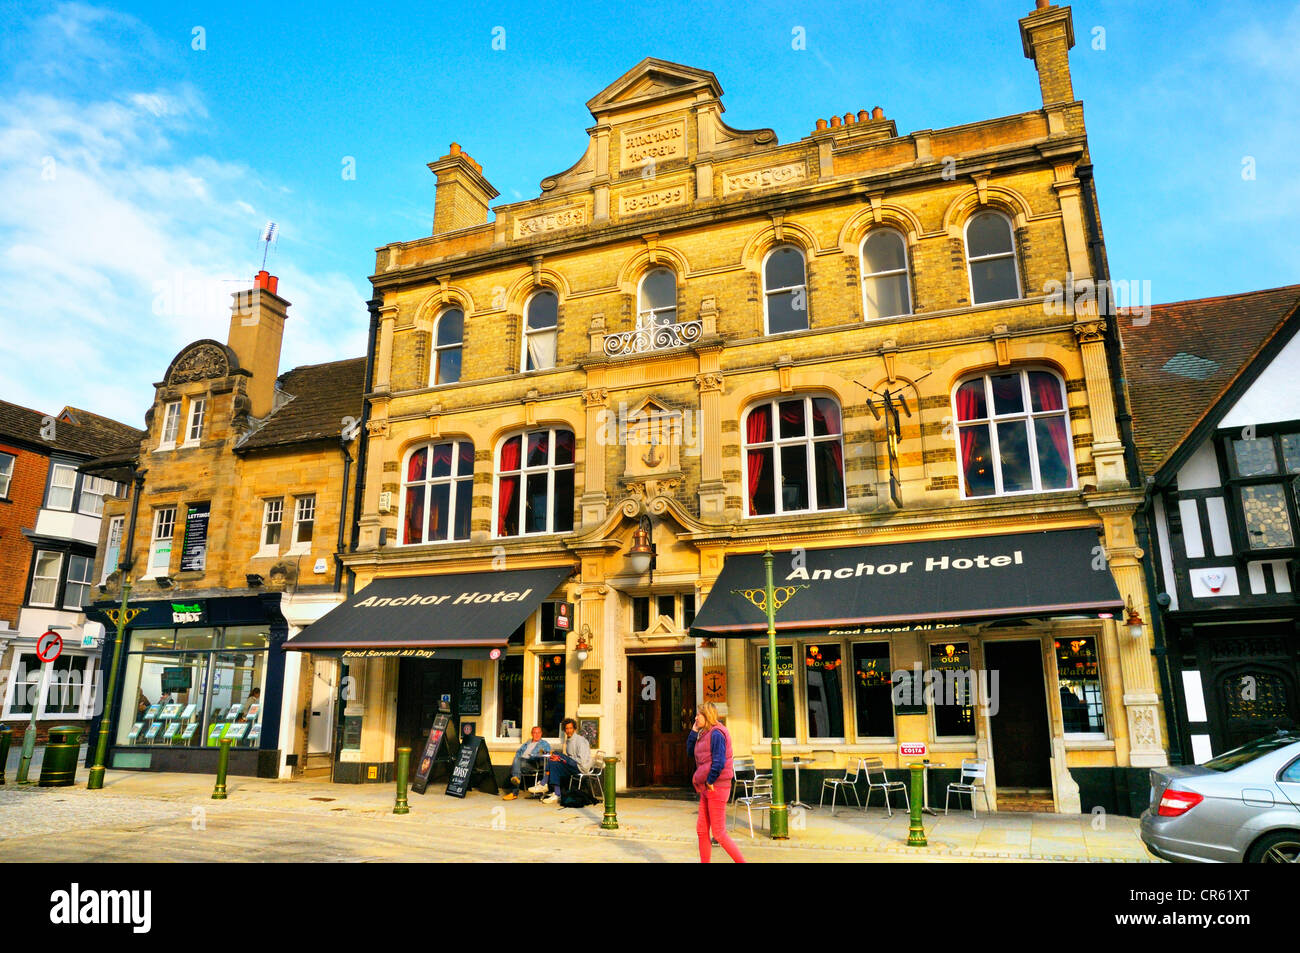 British pub. The Anchor Hotel, Horsham, West Sussex, UK - Stock Image